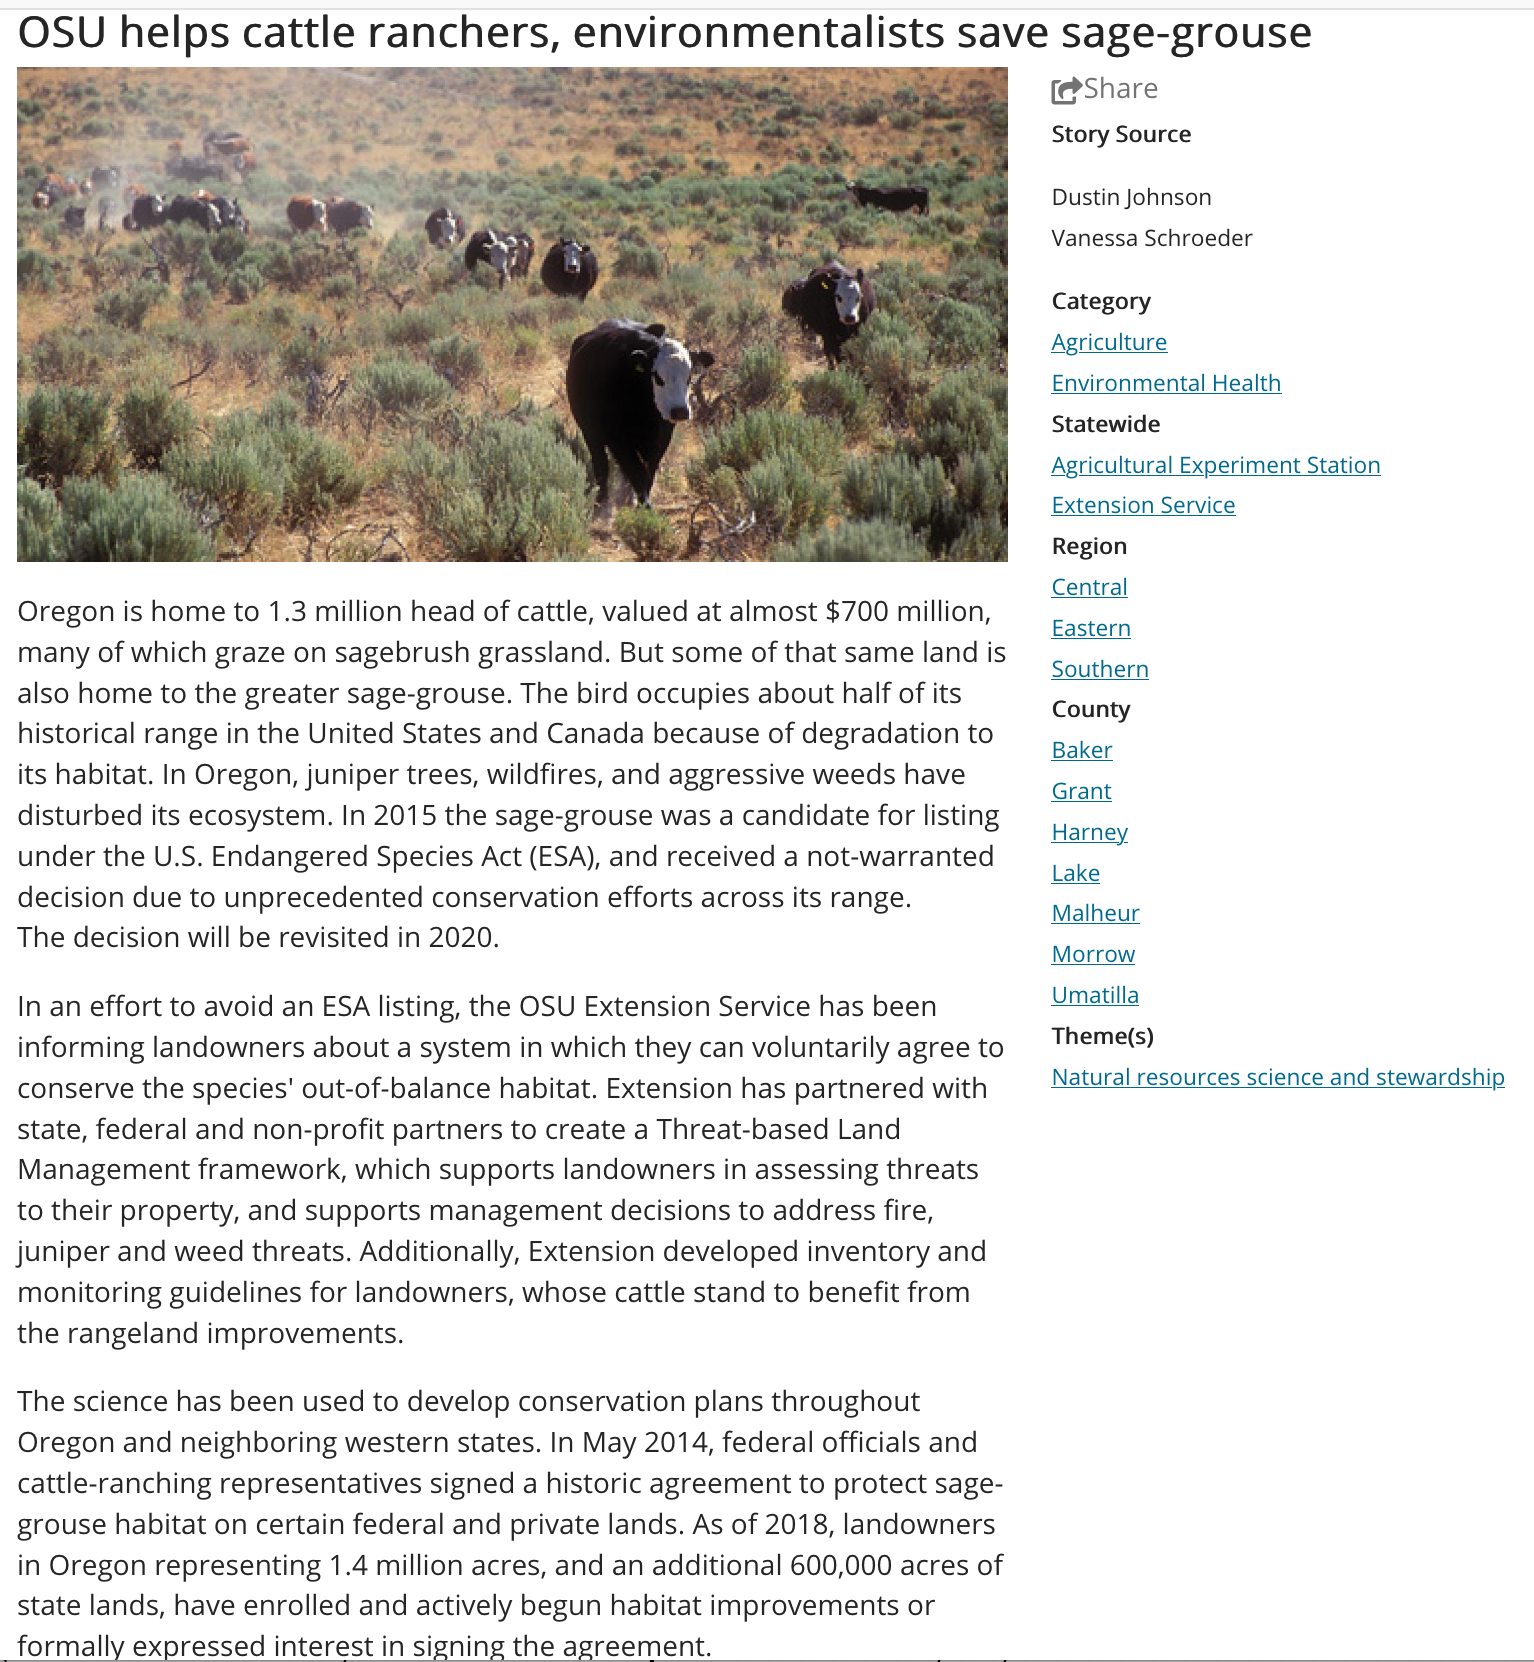 Screenshot of this impact story: https://ourimpact.oregonstate.edu/story/osu-helps-cattle-ranchers-environmentalists-save-sage-grouse